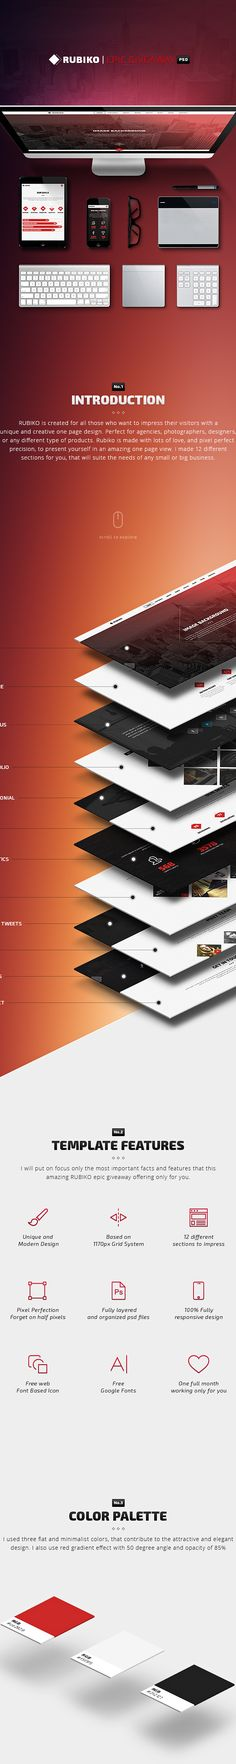 RUBIKO | Epic giveaway on Behance Could be a good way to layout for Project Details once clicked on in project gallery